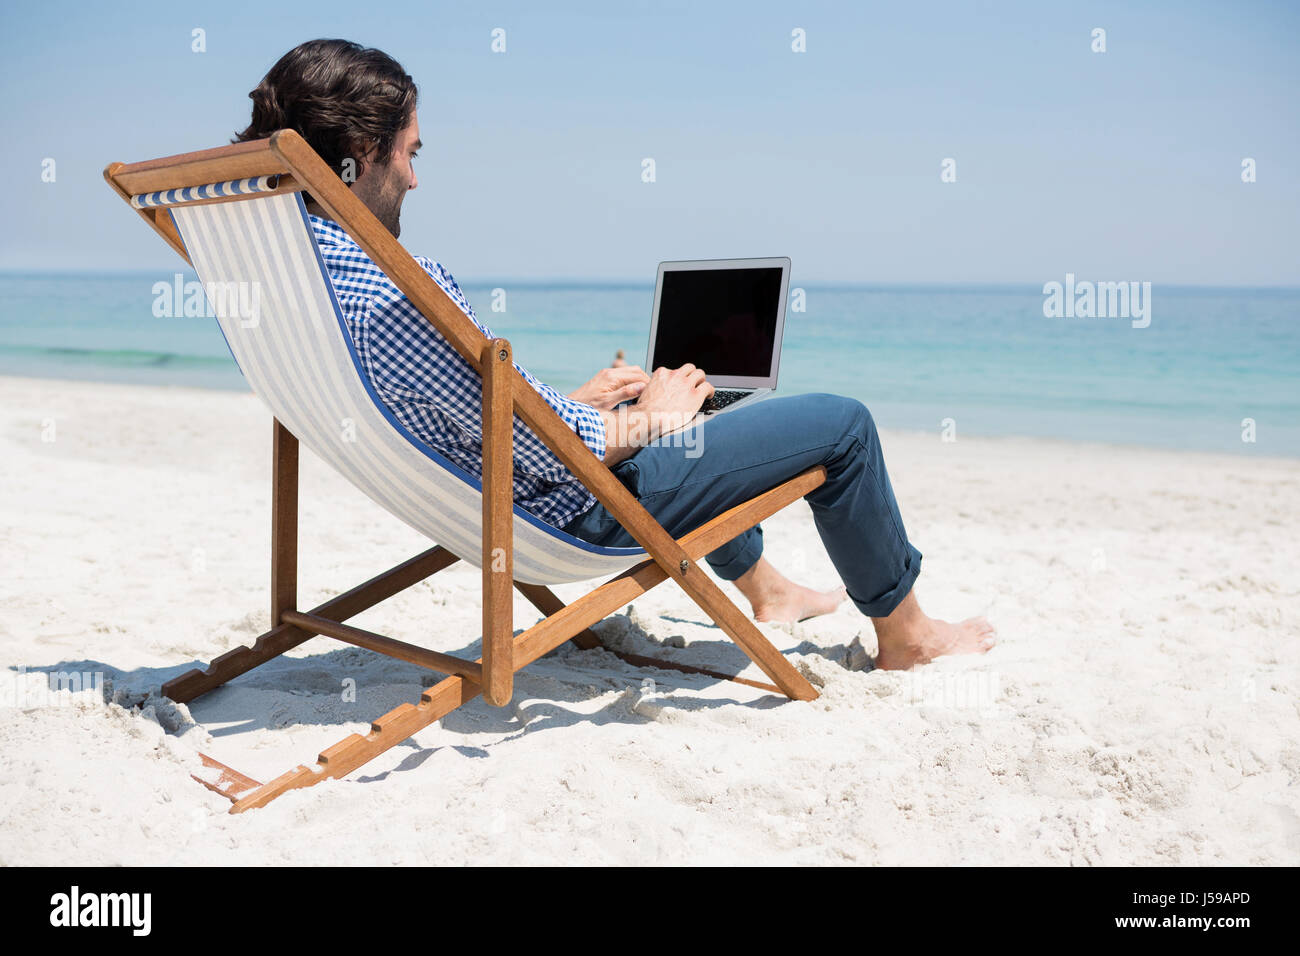 Beach lounge chair side view - Side View Of Man Using Laptop While Sitting On Deck Chair At Beach Stock Image